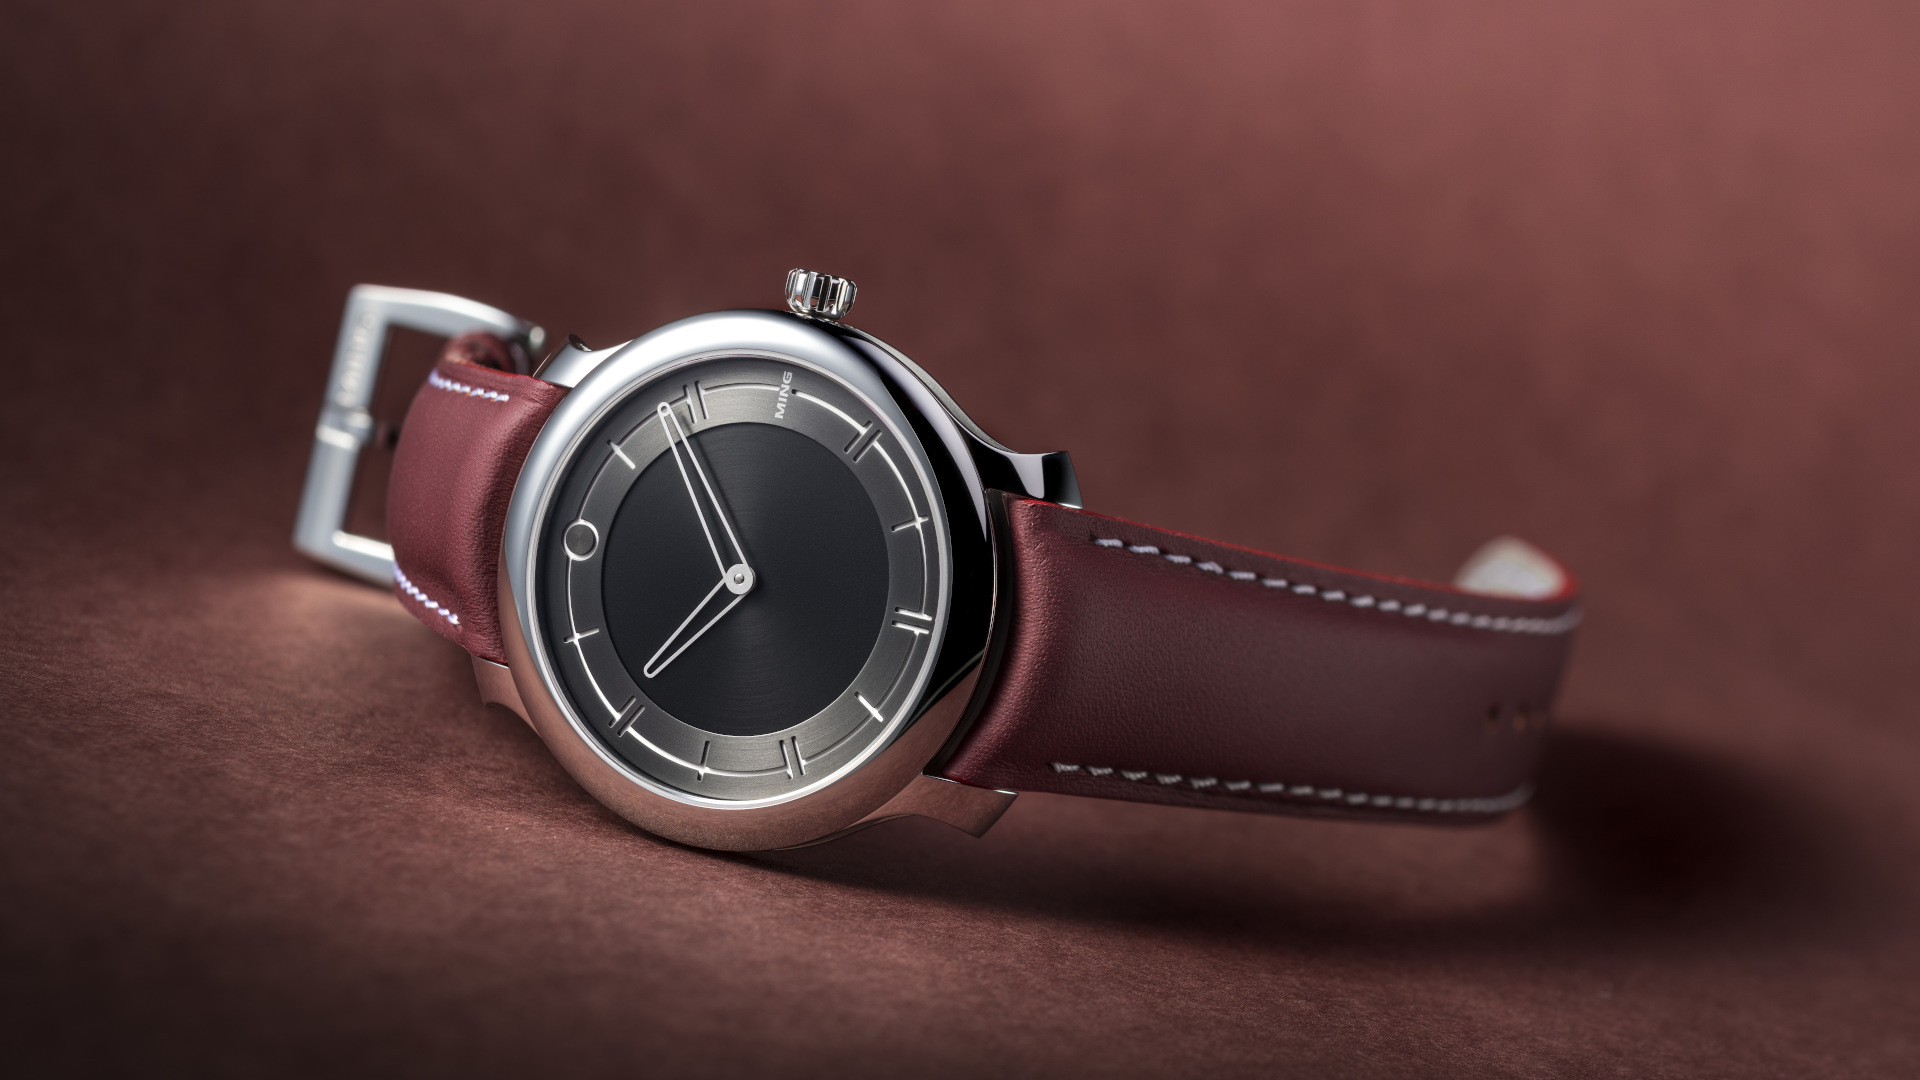 The MING 27.01 is a reimagination of their first watch, but without the limits of being affordable